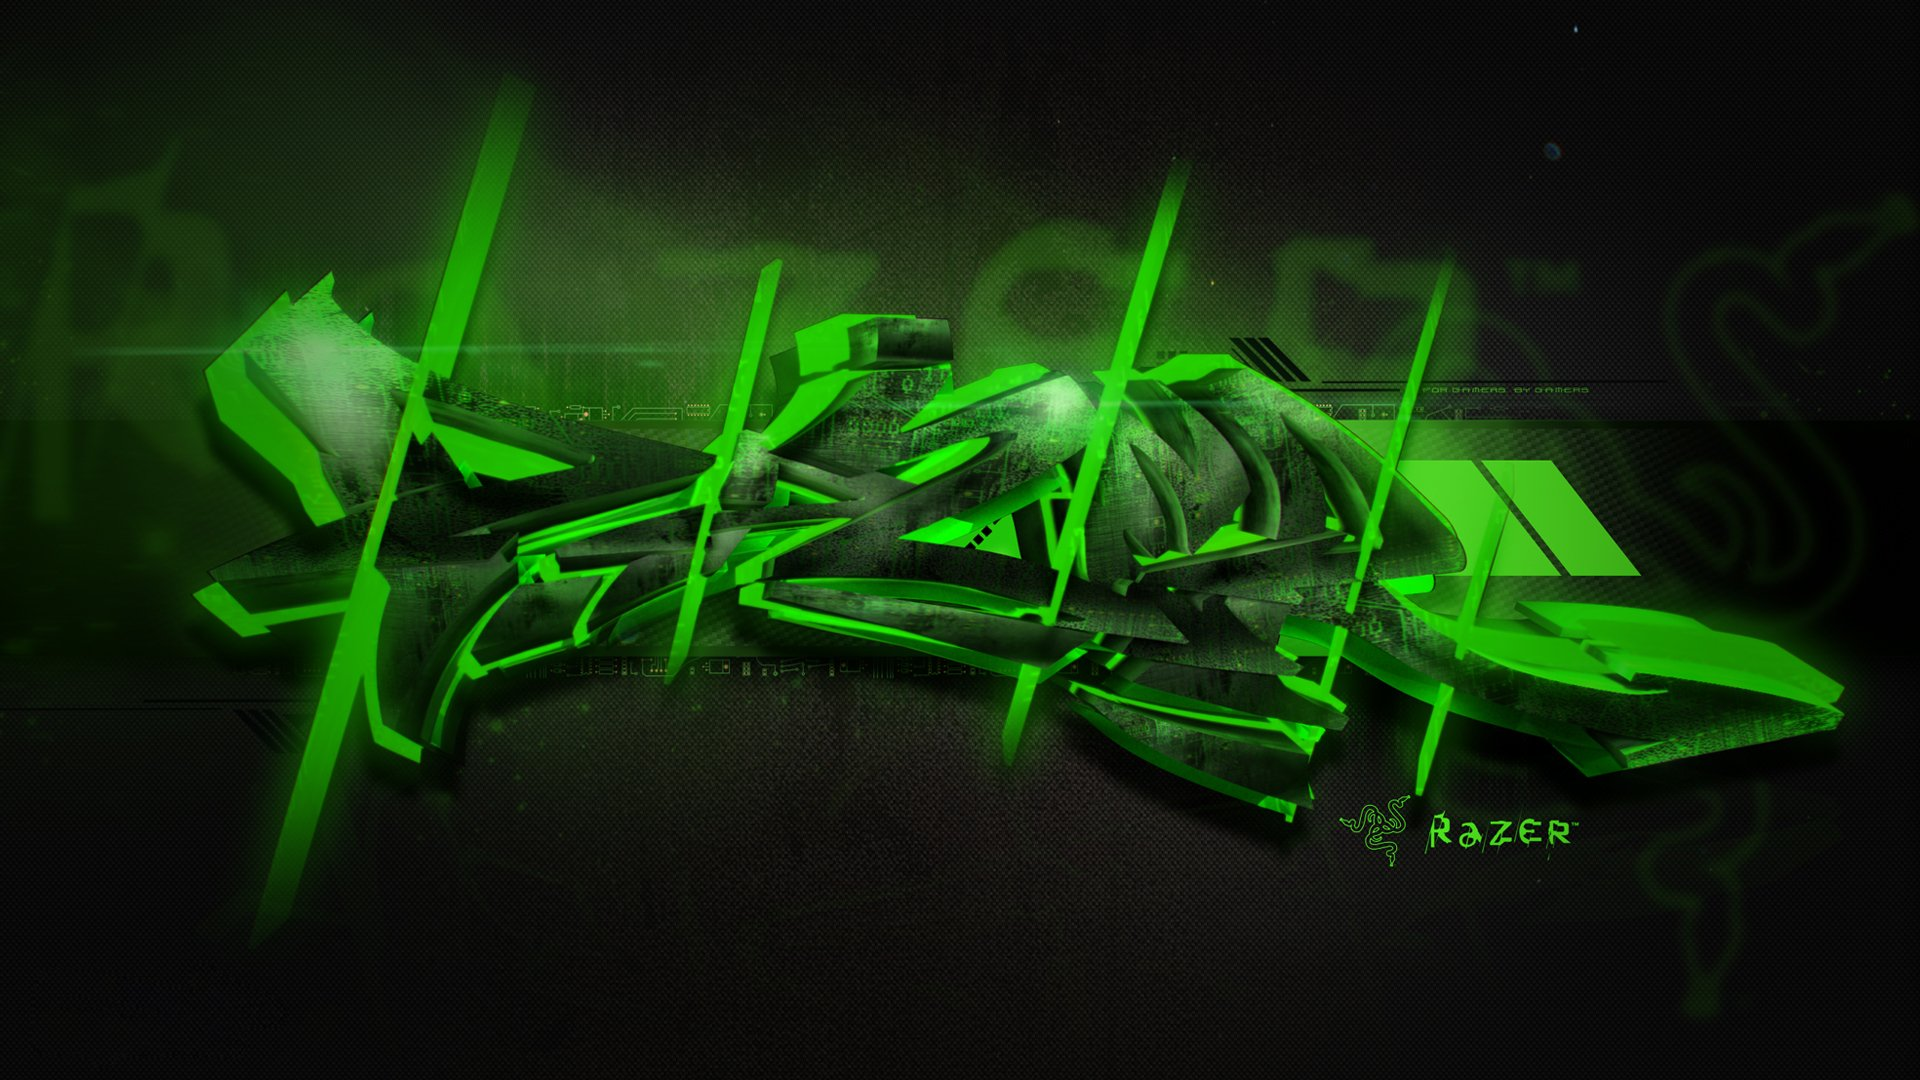 razer, green, graffiti